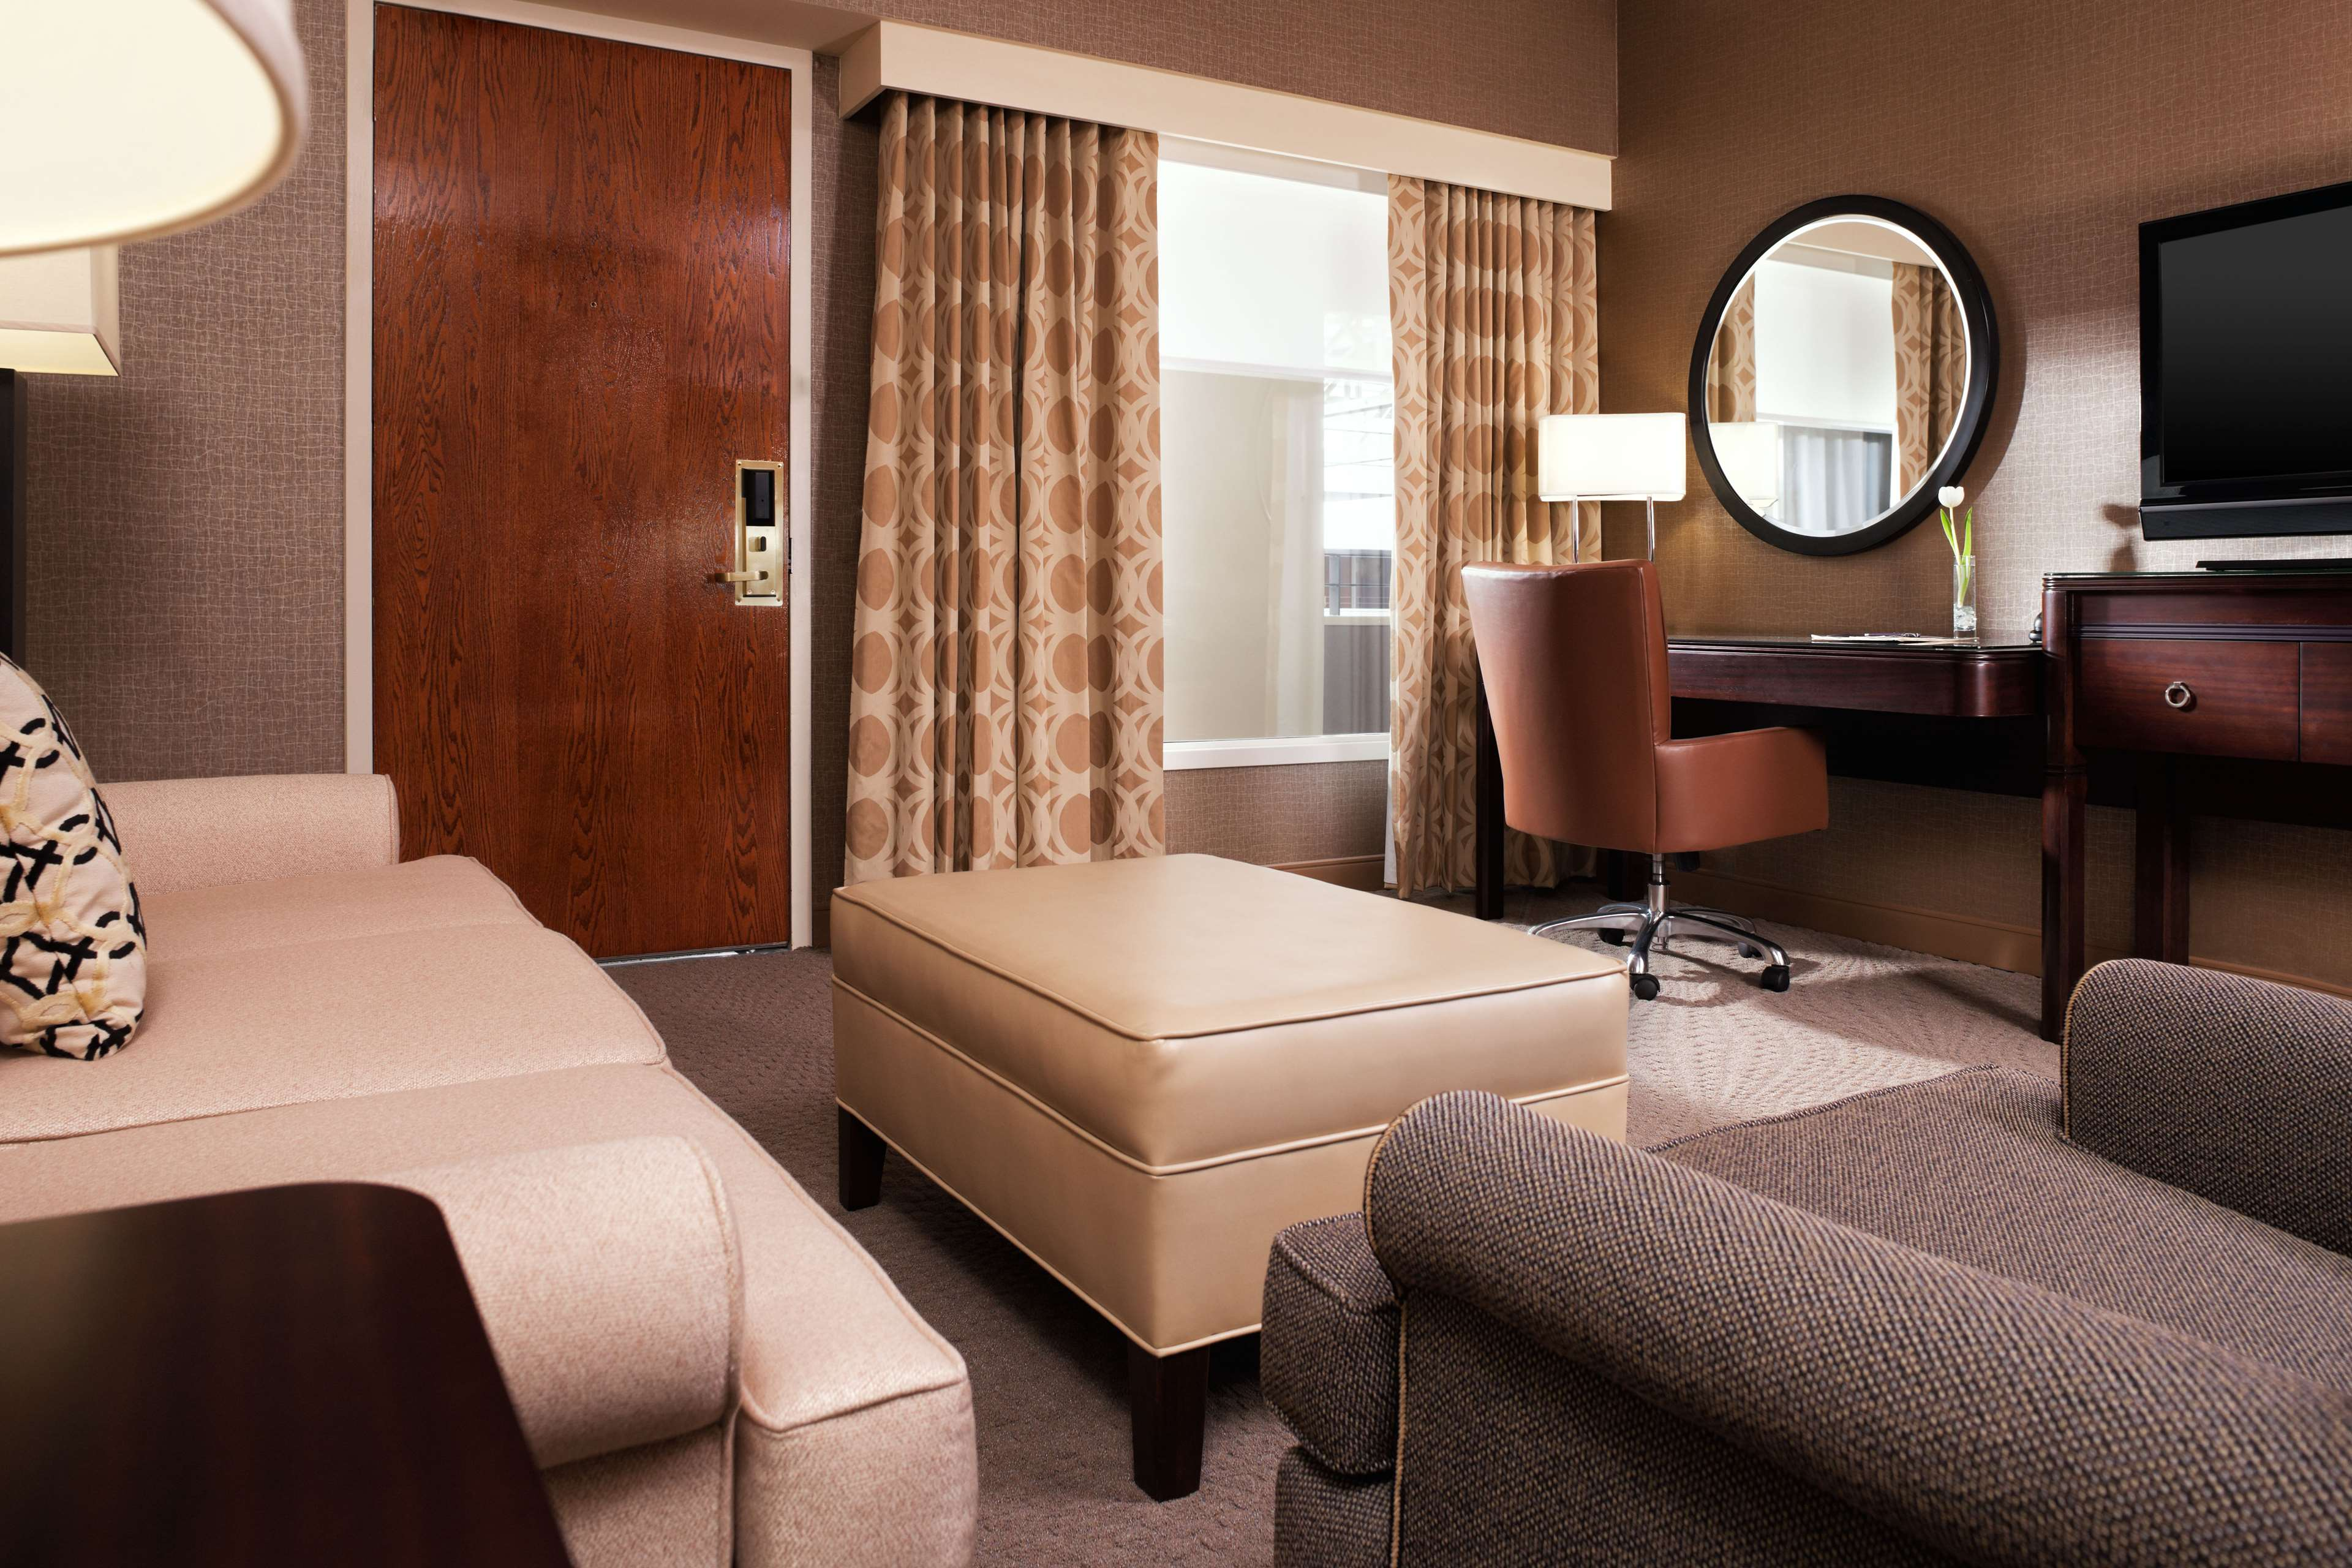 Sheraton Suites Chicago O'Hare image 6